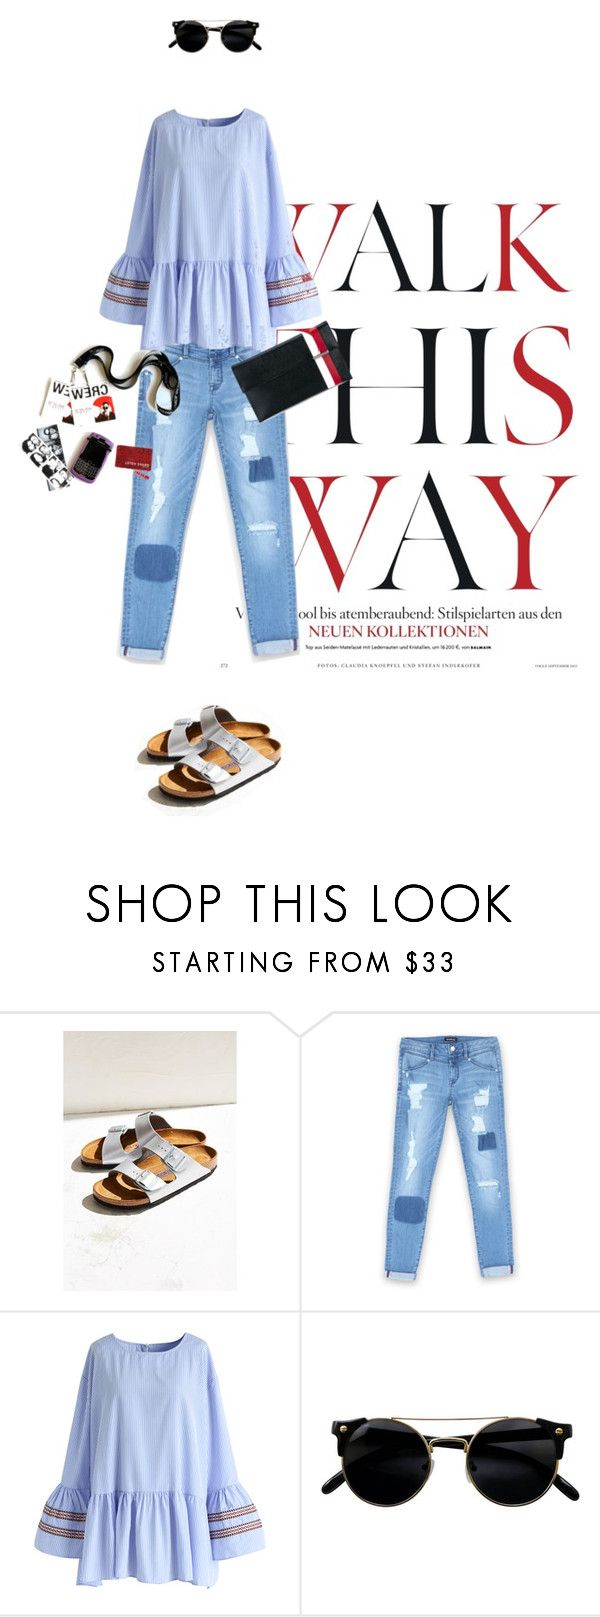 """so ugly"" by natyleygam ❤ liked on Polyvore featuring Anja, Birkenstock, Bebe, Chicwish, Tomasini, uglyshoes and walkthisway"